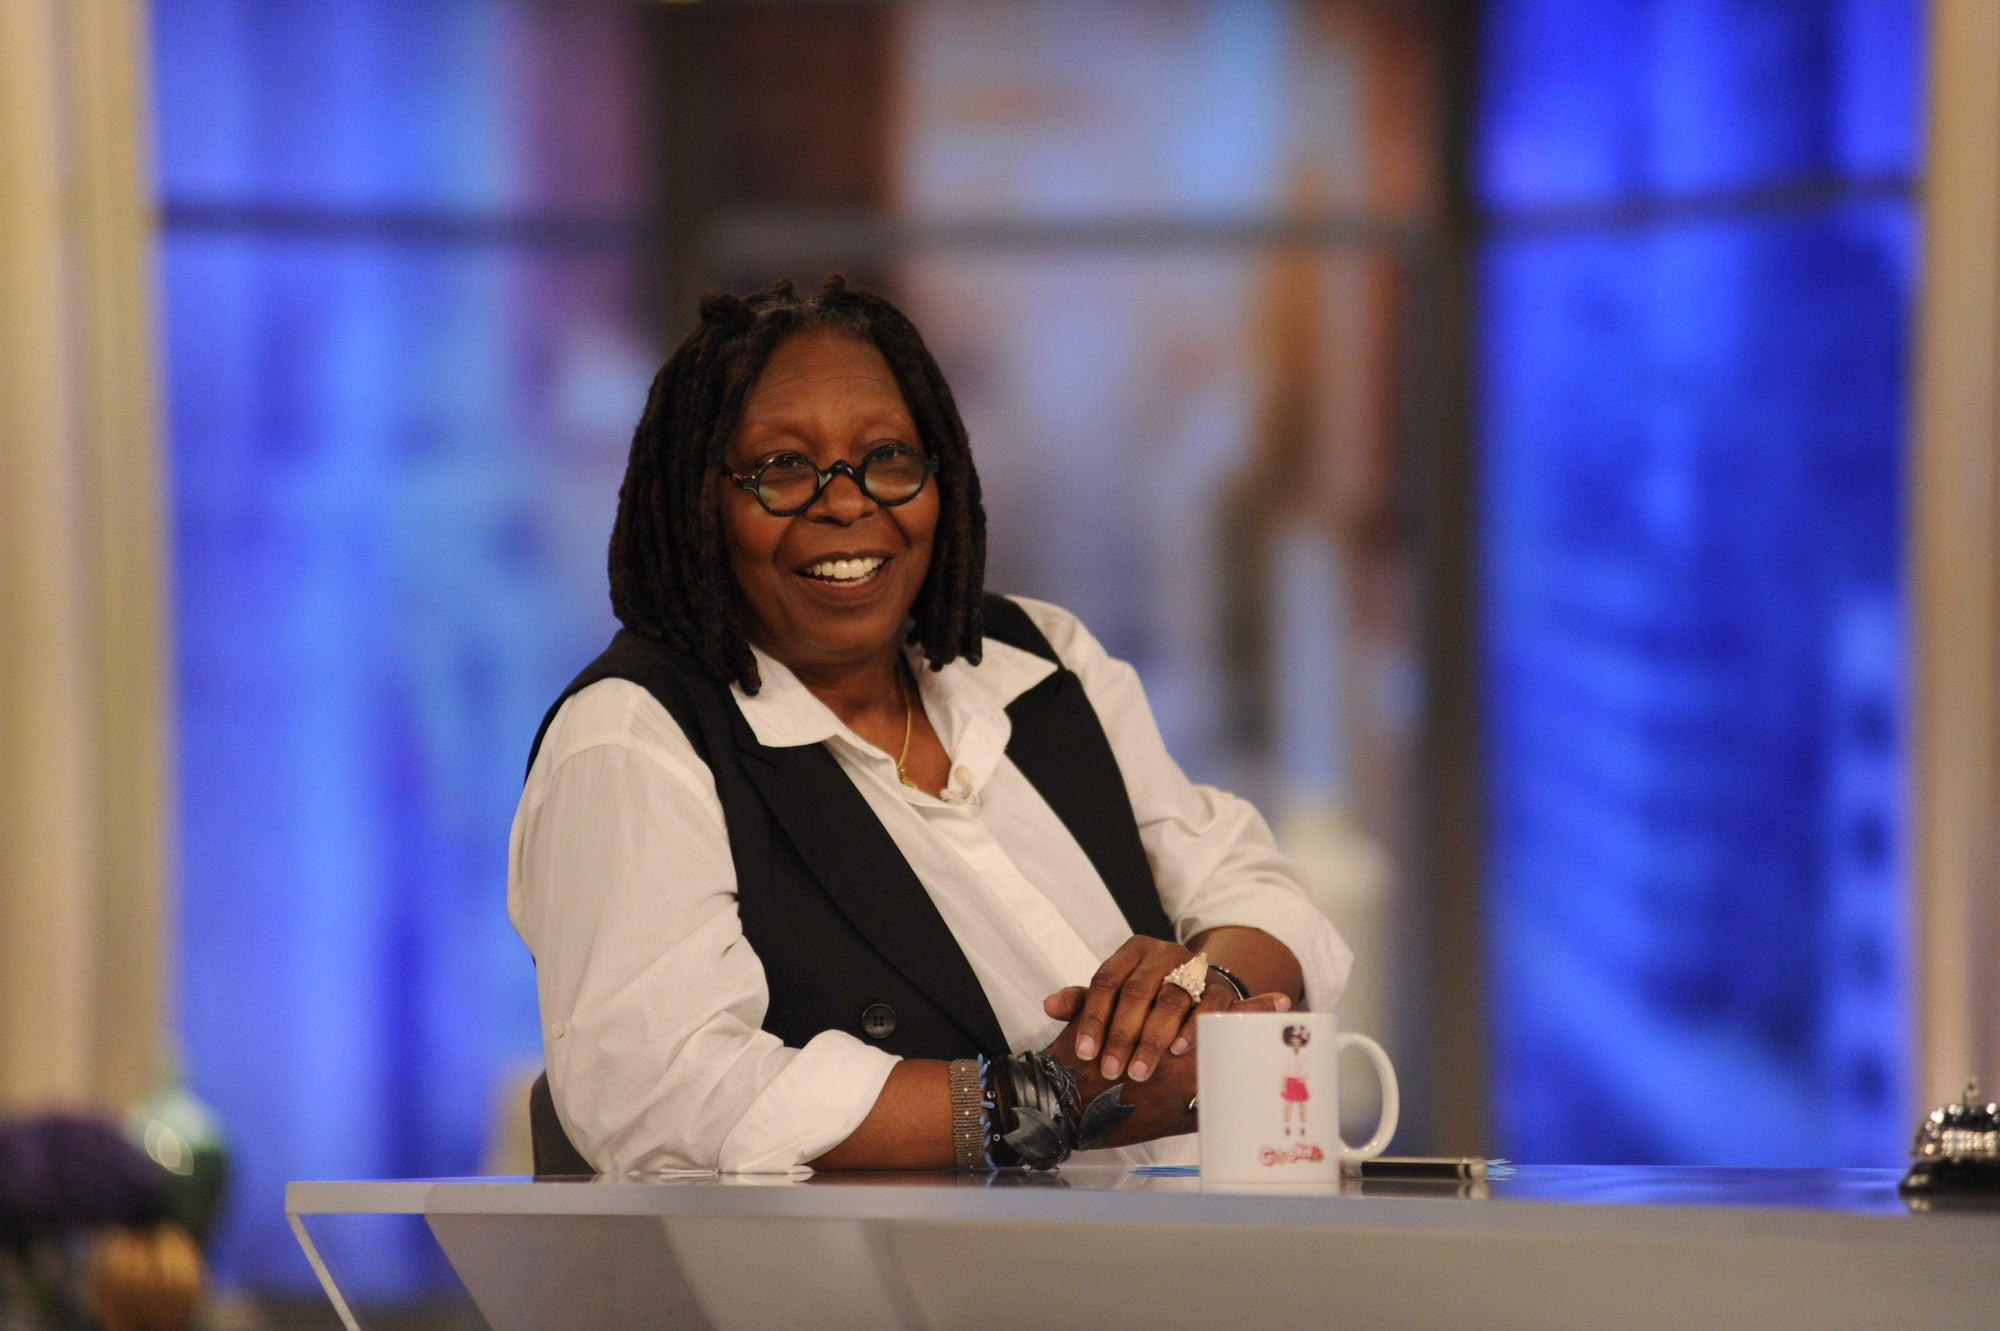 Whoopi Goldberg Co-Hosts 'The View' While Self-Quarantined